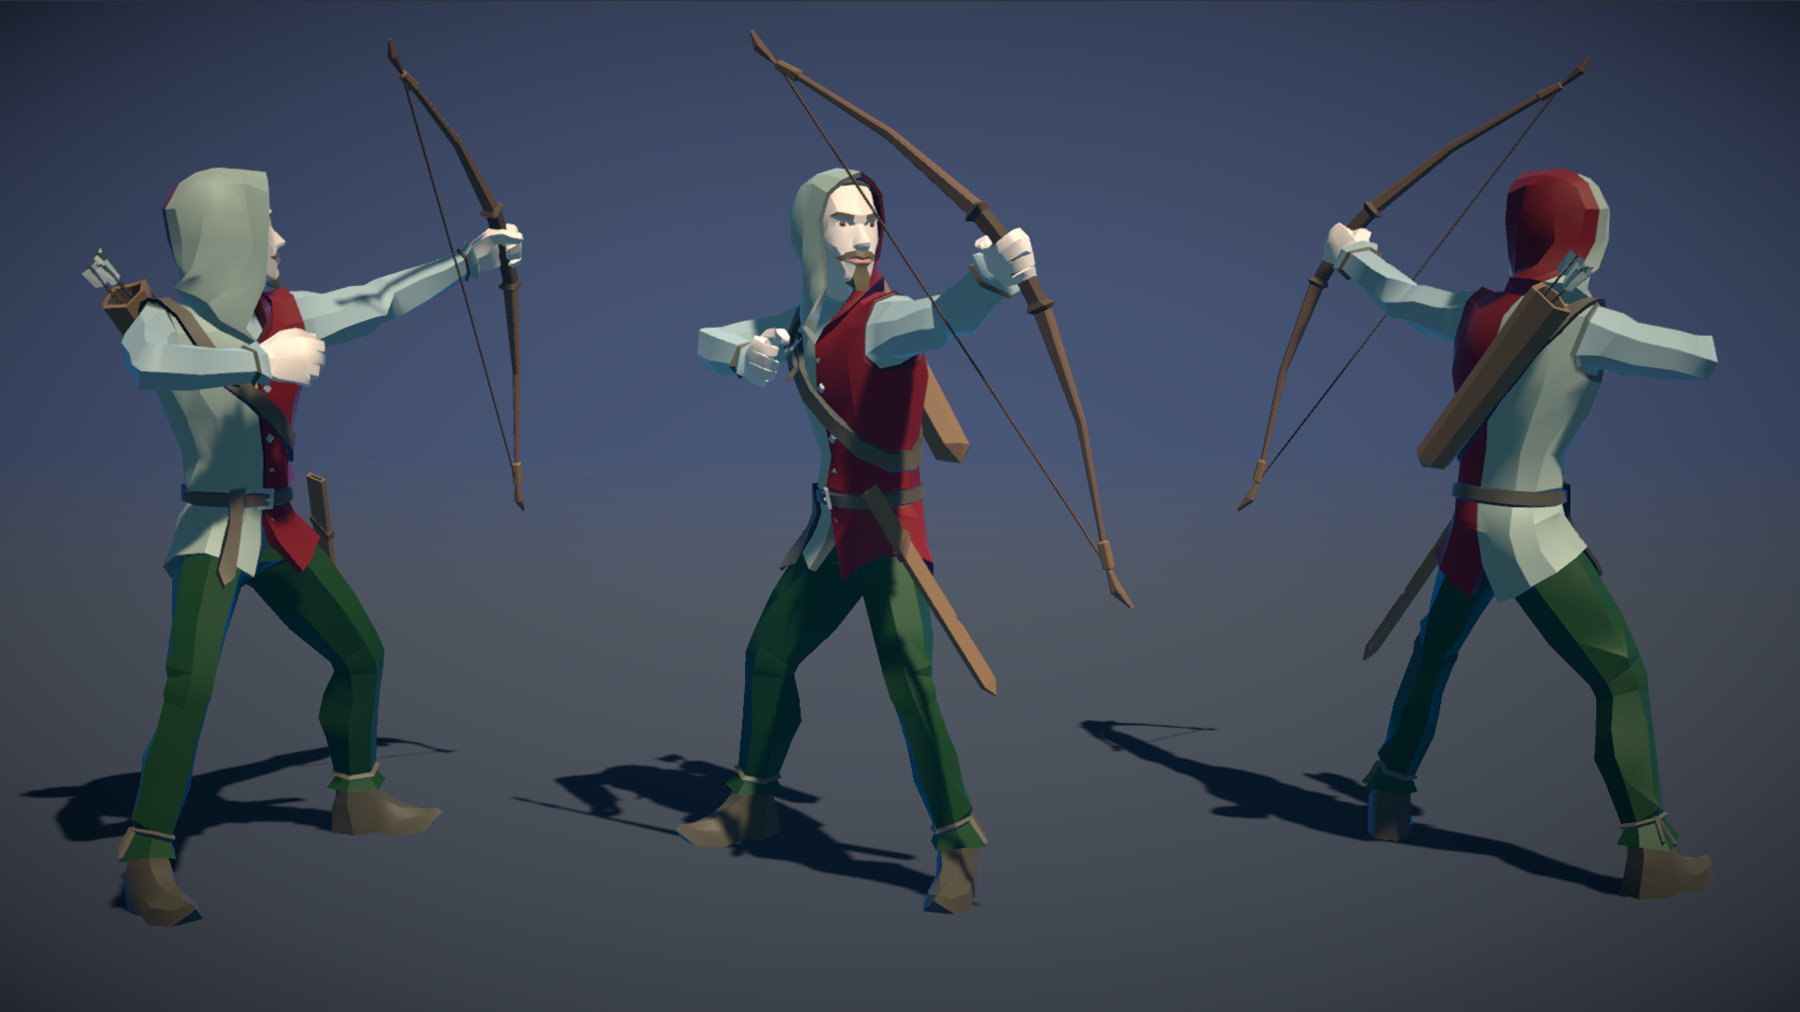 Pt medieval lowpoly characters archer 01